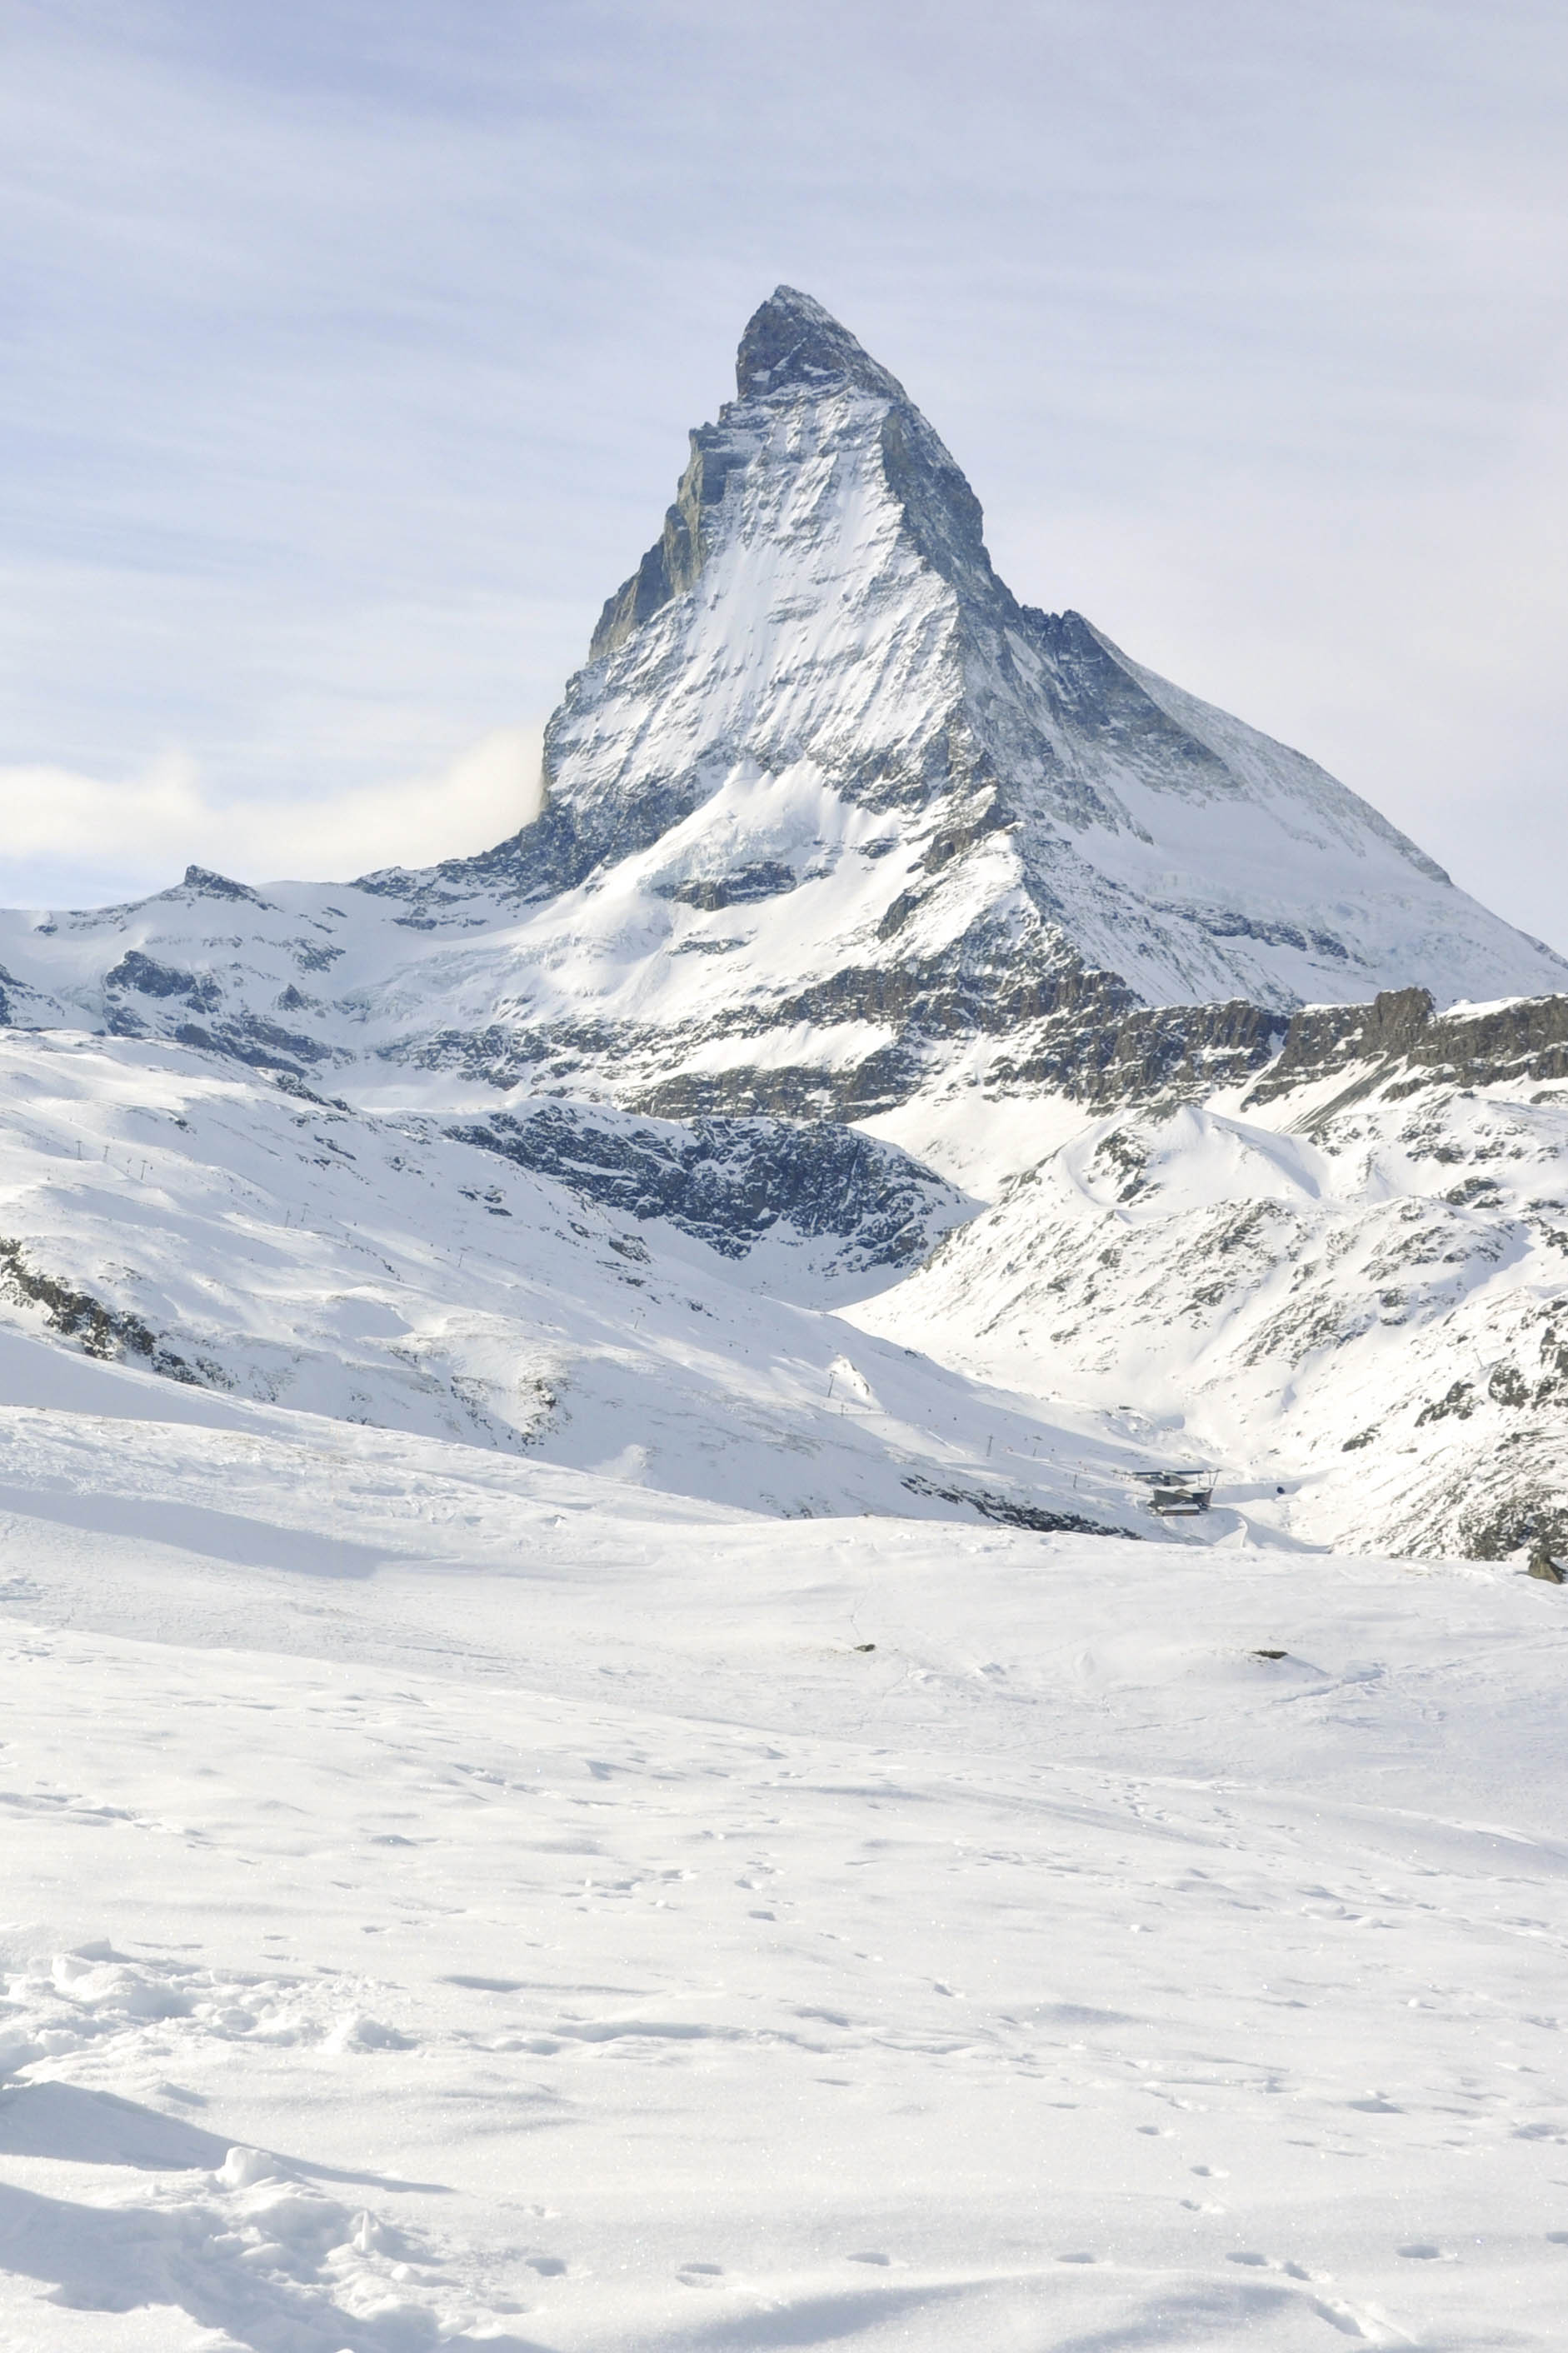 The Matterhorn, Switzerland.